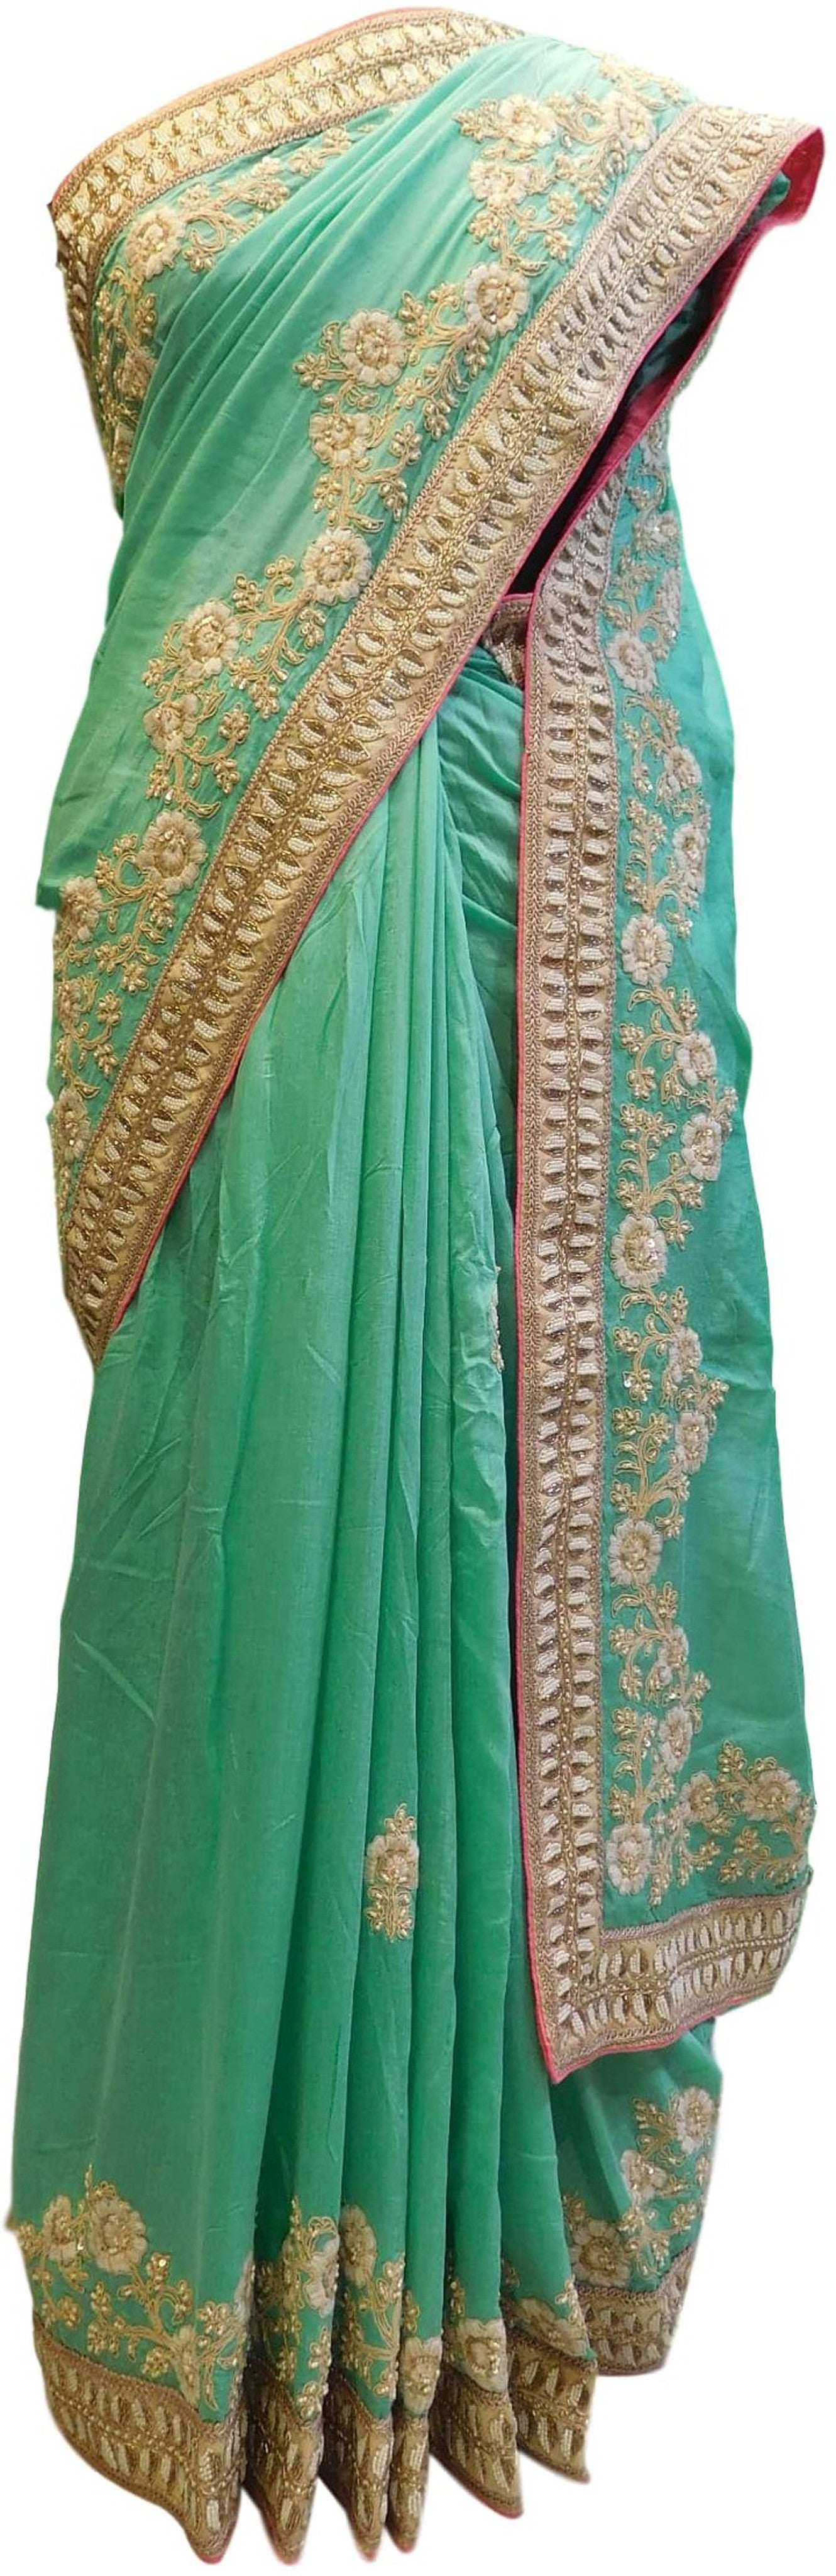 Green Designer Bridal Georgette Sari Zari, Stone, Sequence, Cutdana & Pearl Hand Embroidery Work Saree